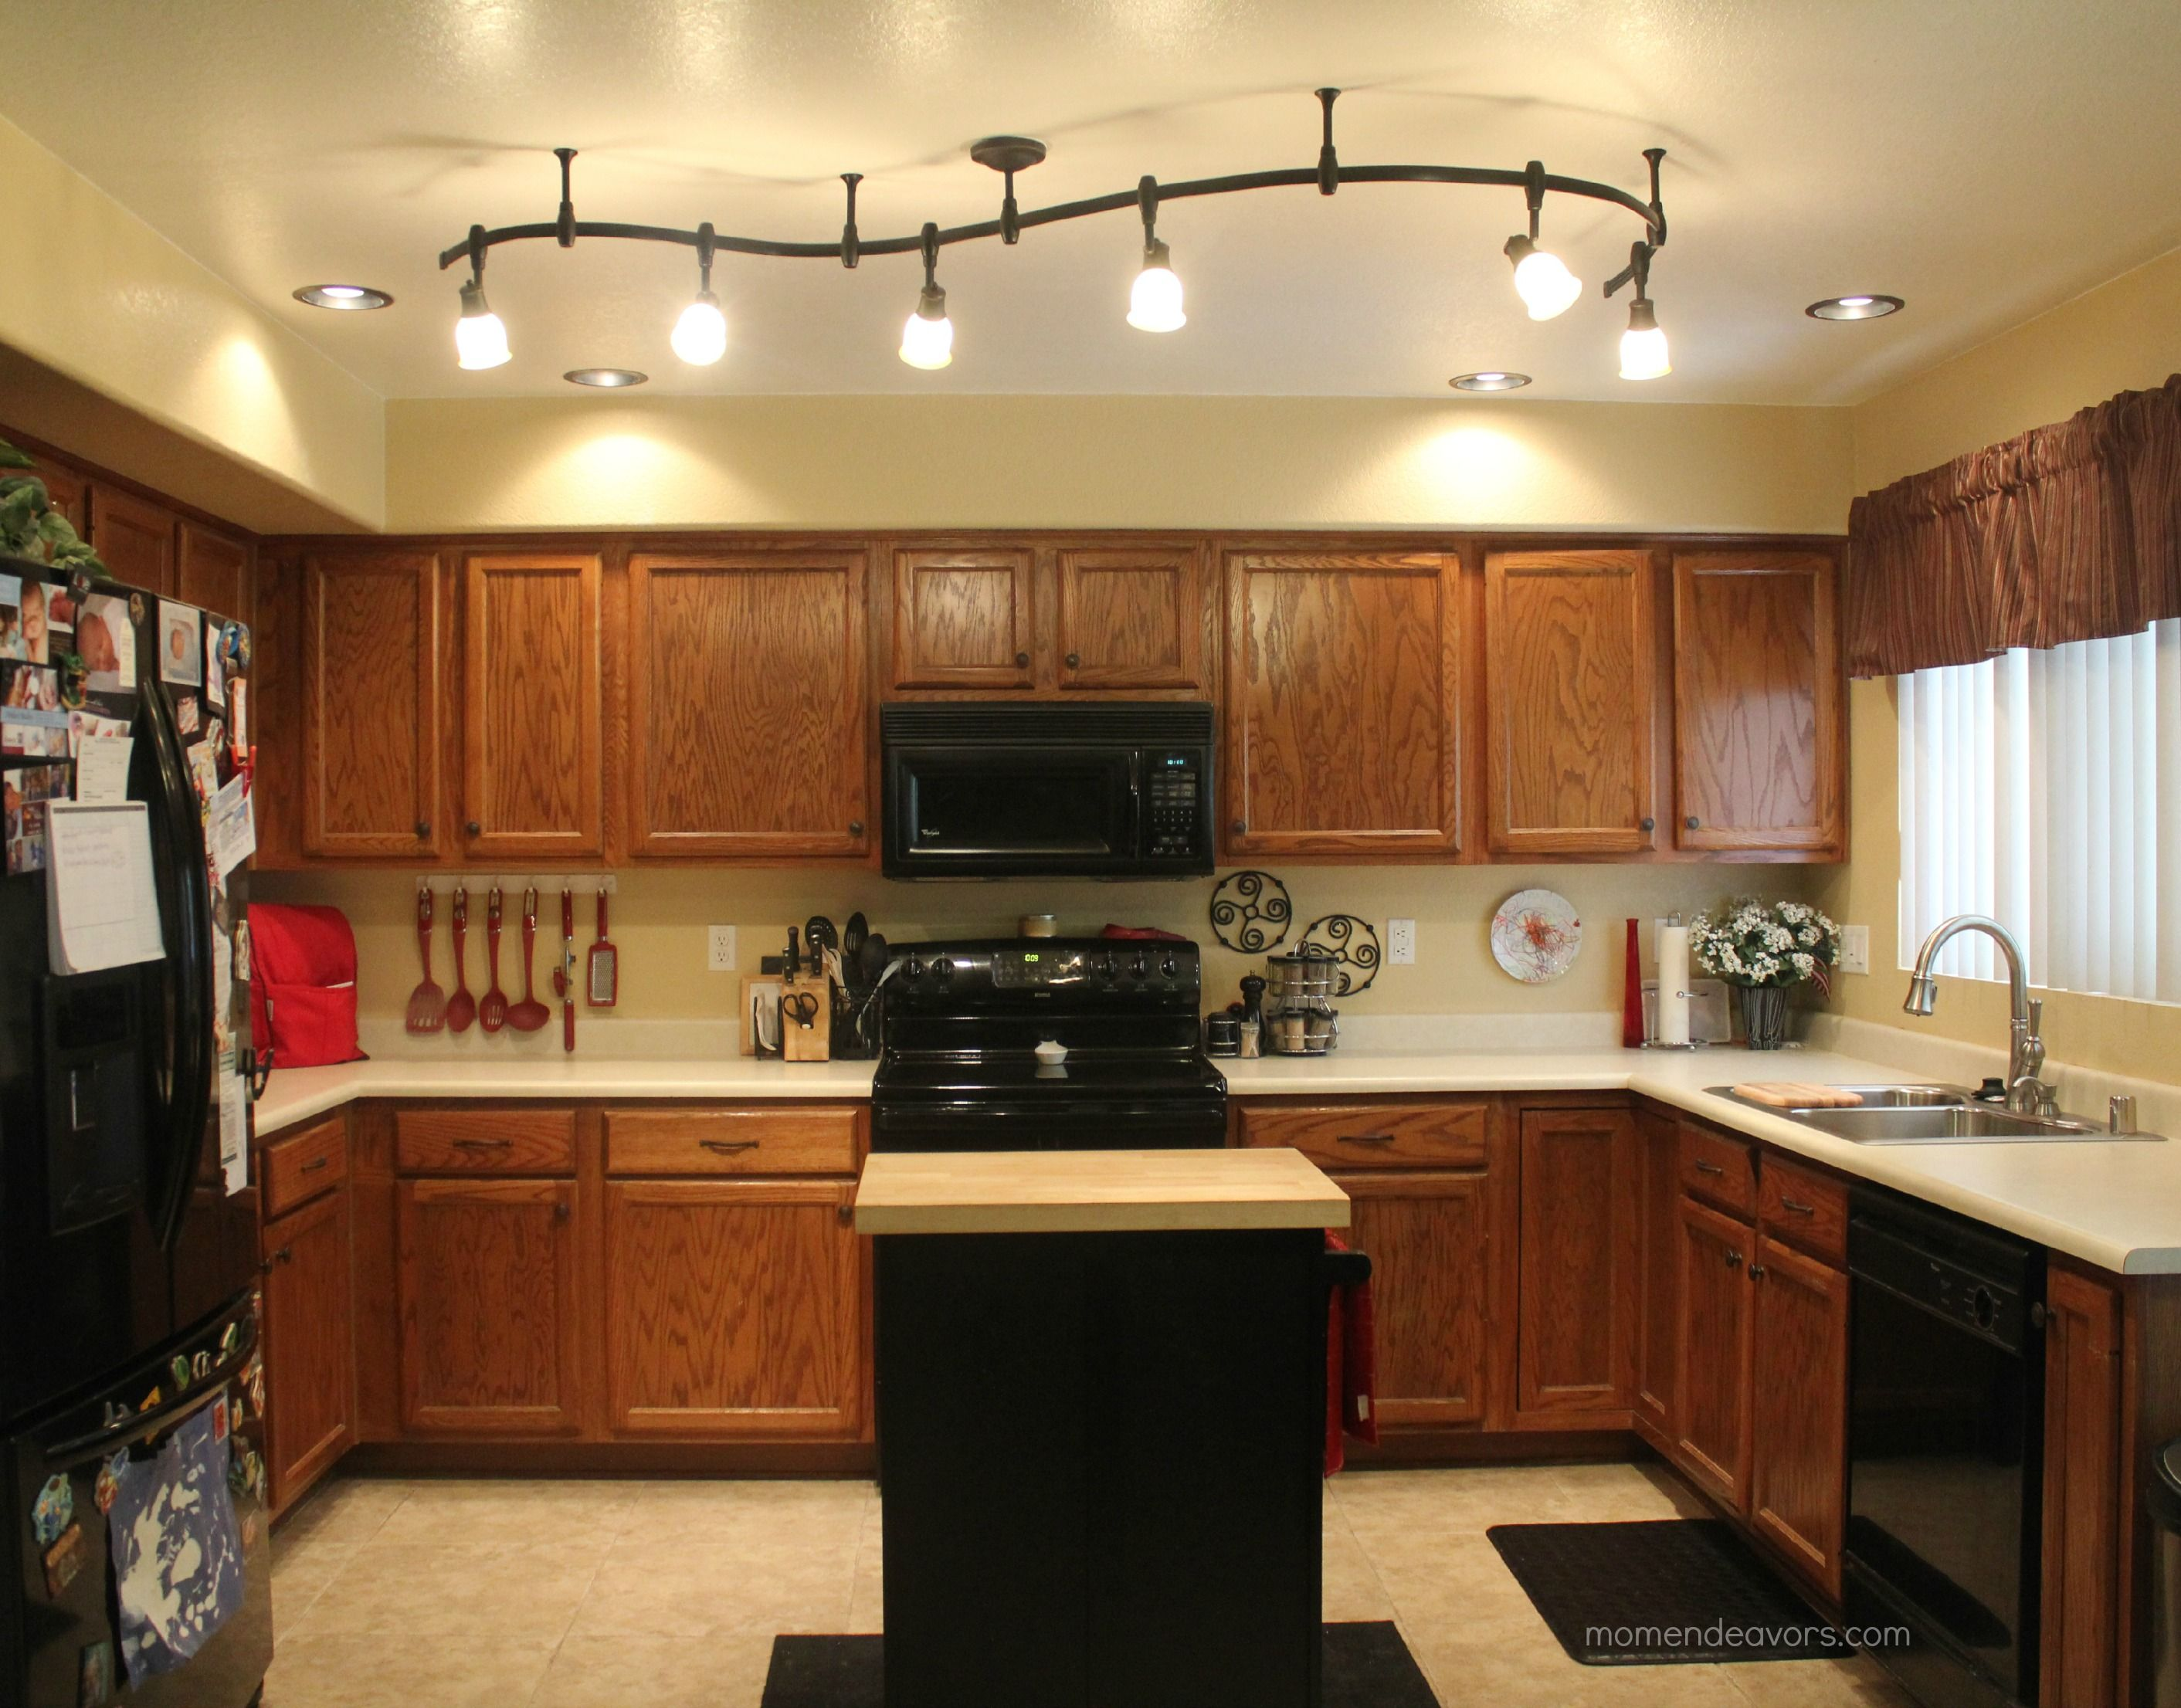 Kitchen Lighting Ideas 11 Stunning Photos Of Kitchen Track Lighting  Family Kitchen .